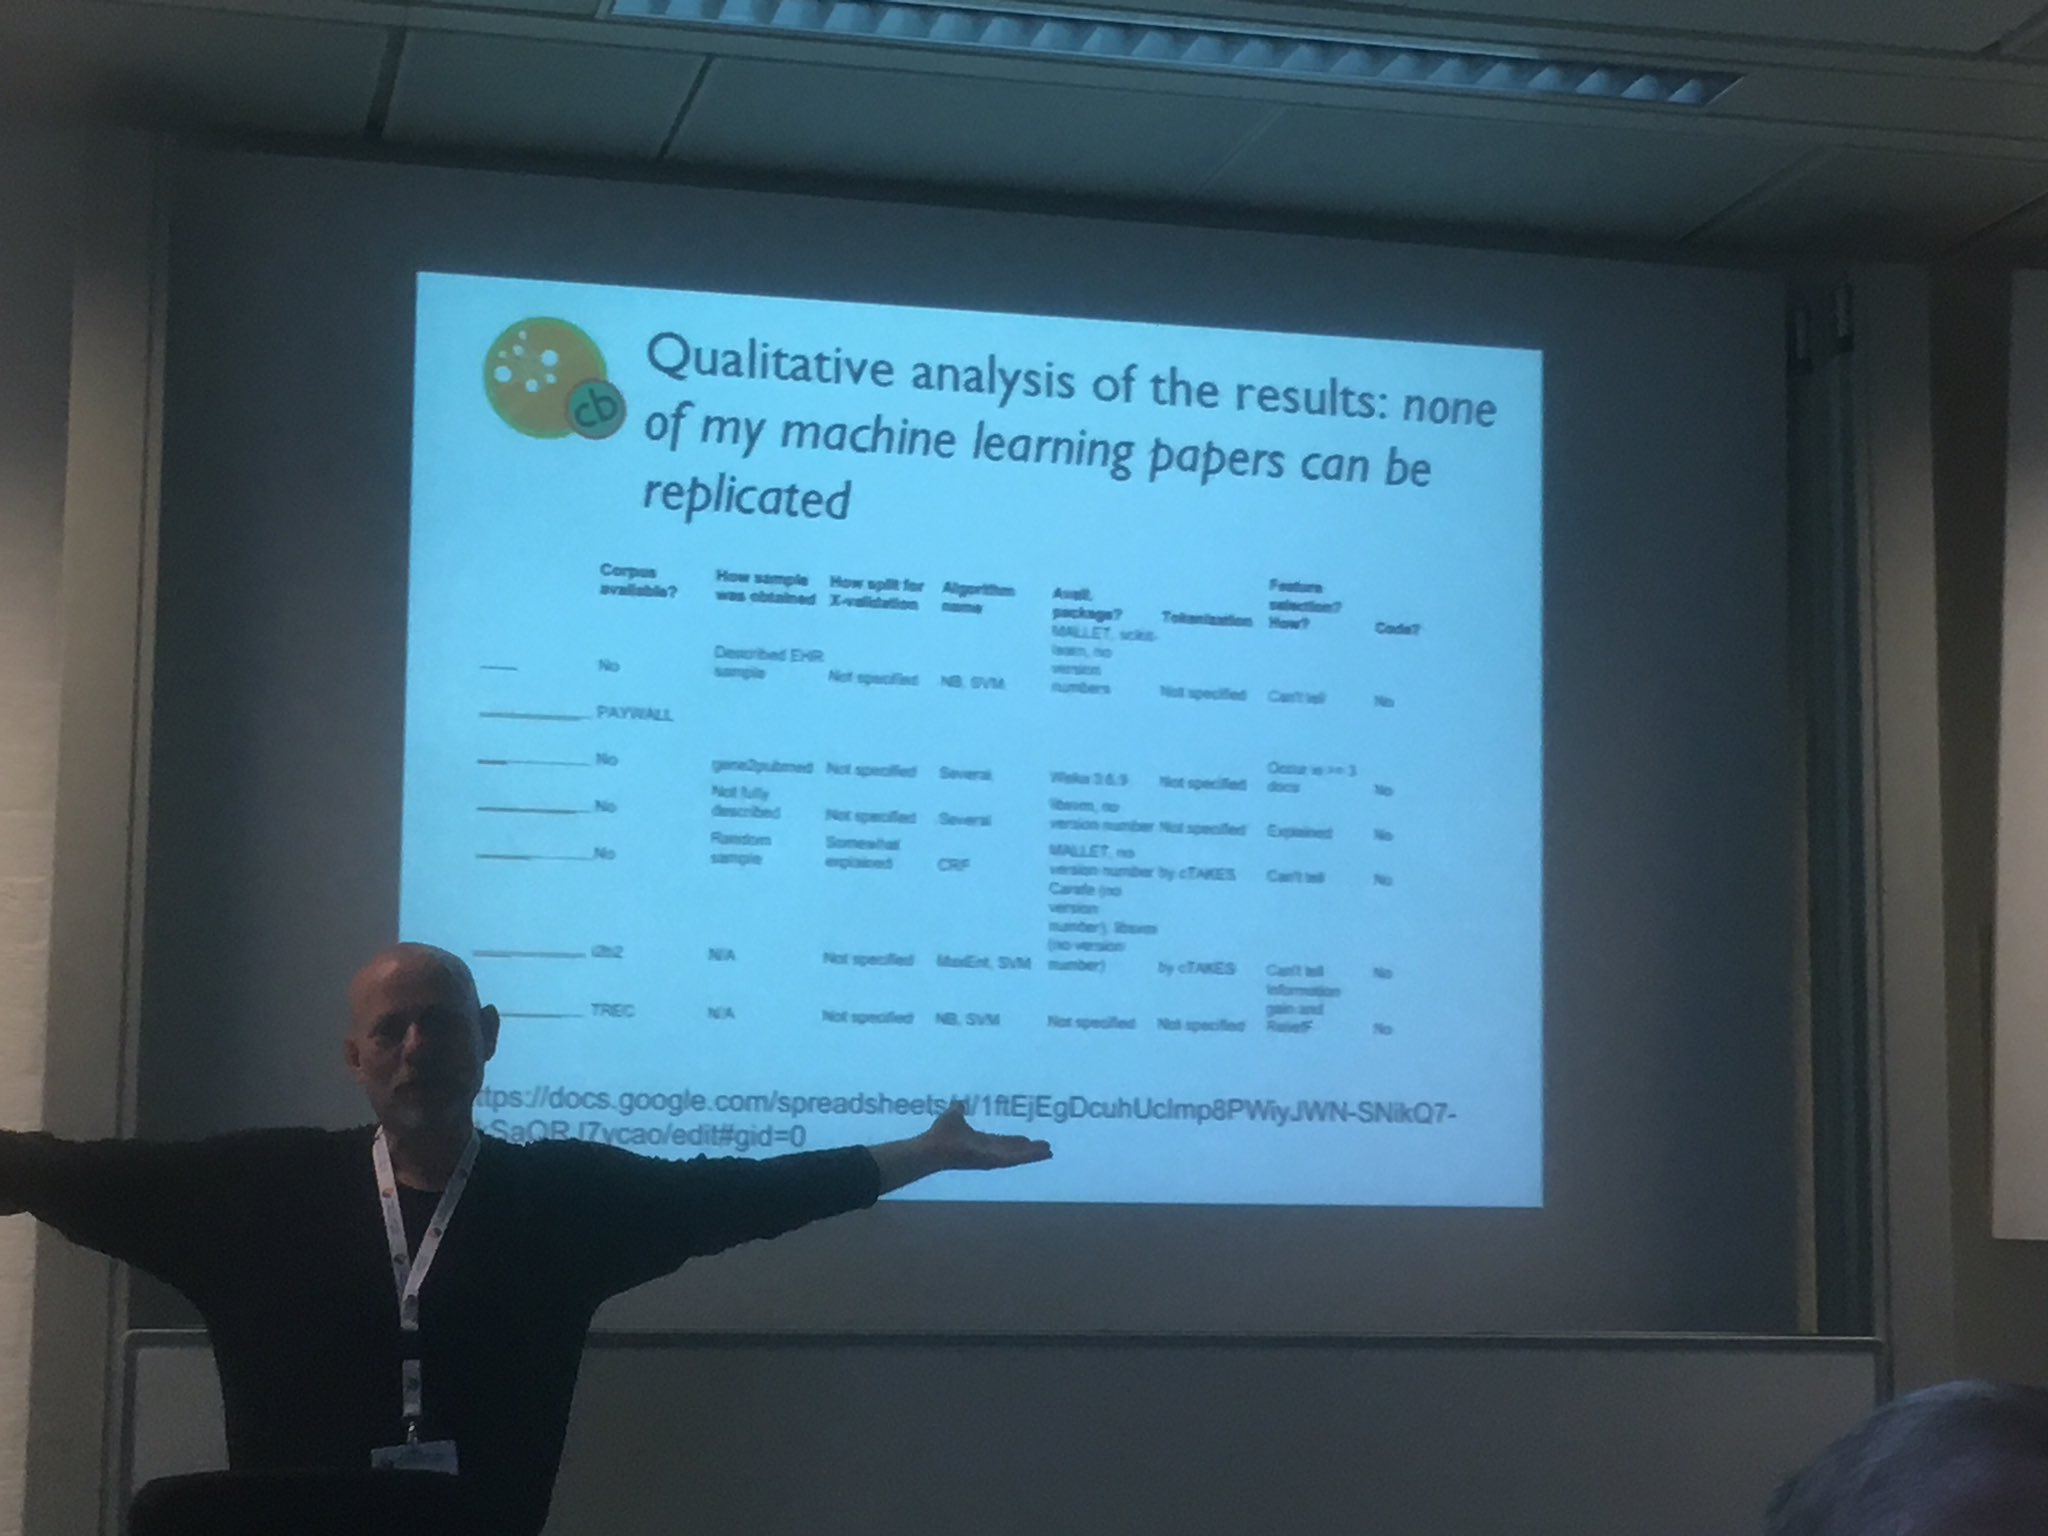 Kevin Cohen studied reproducibility for years & then checked his own papers #scientistsrhuman #WCRI2017 https://t.co/6OS3V7lO4u